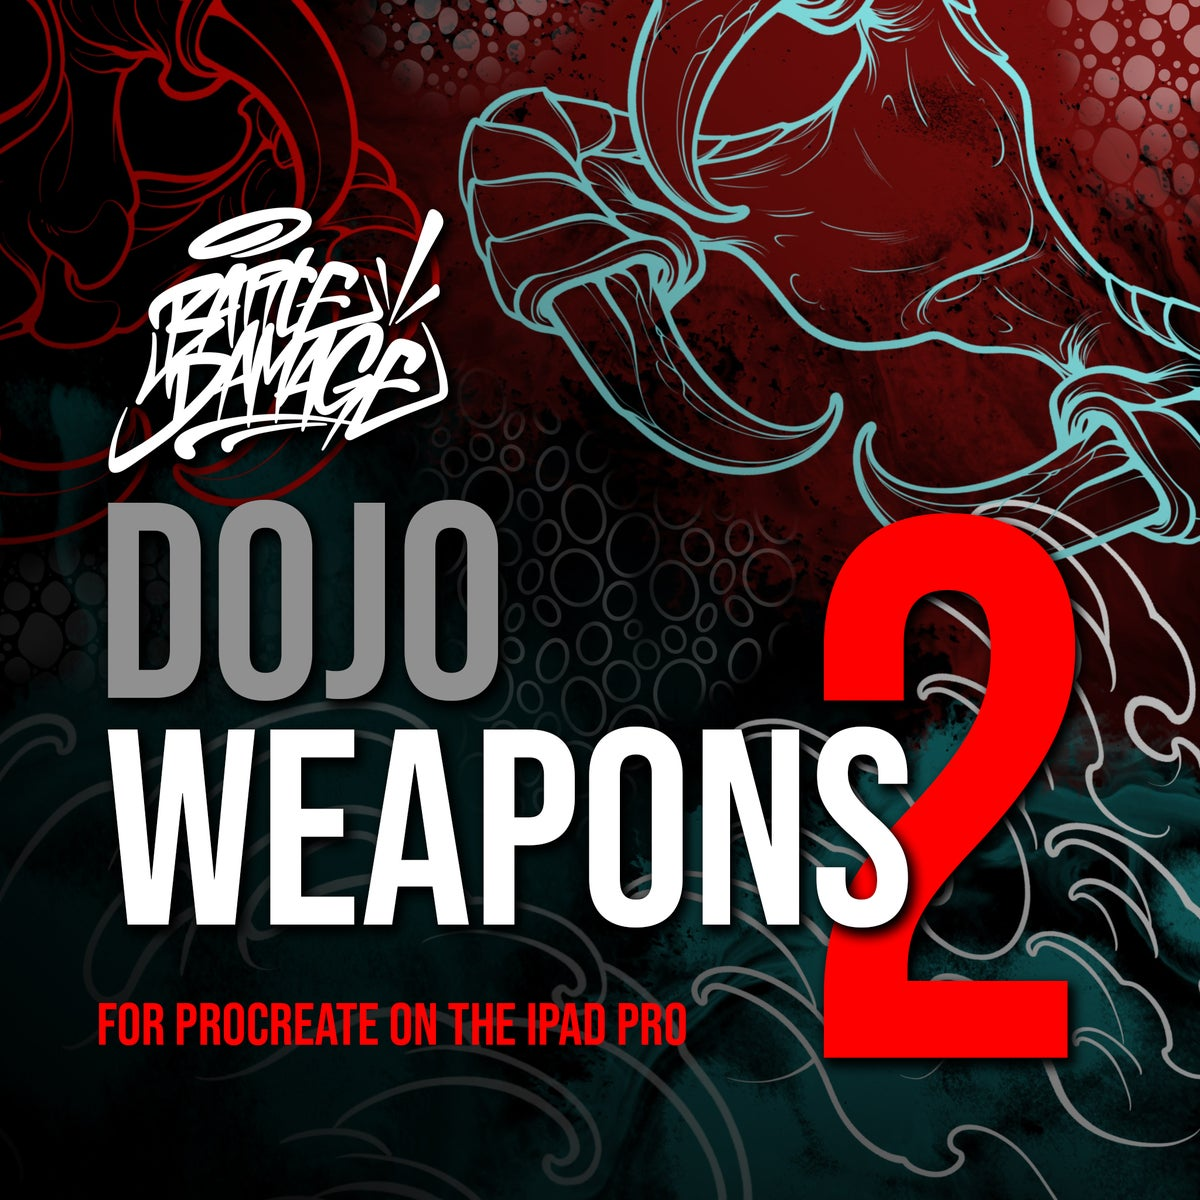 Image of Dojo Weapons 2 for Procreate